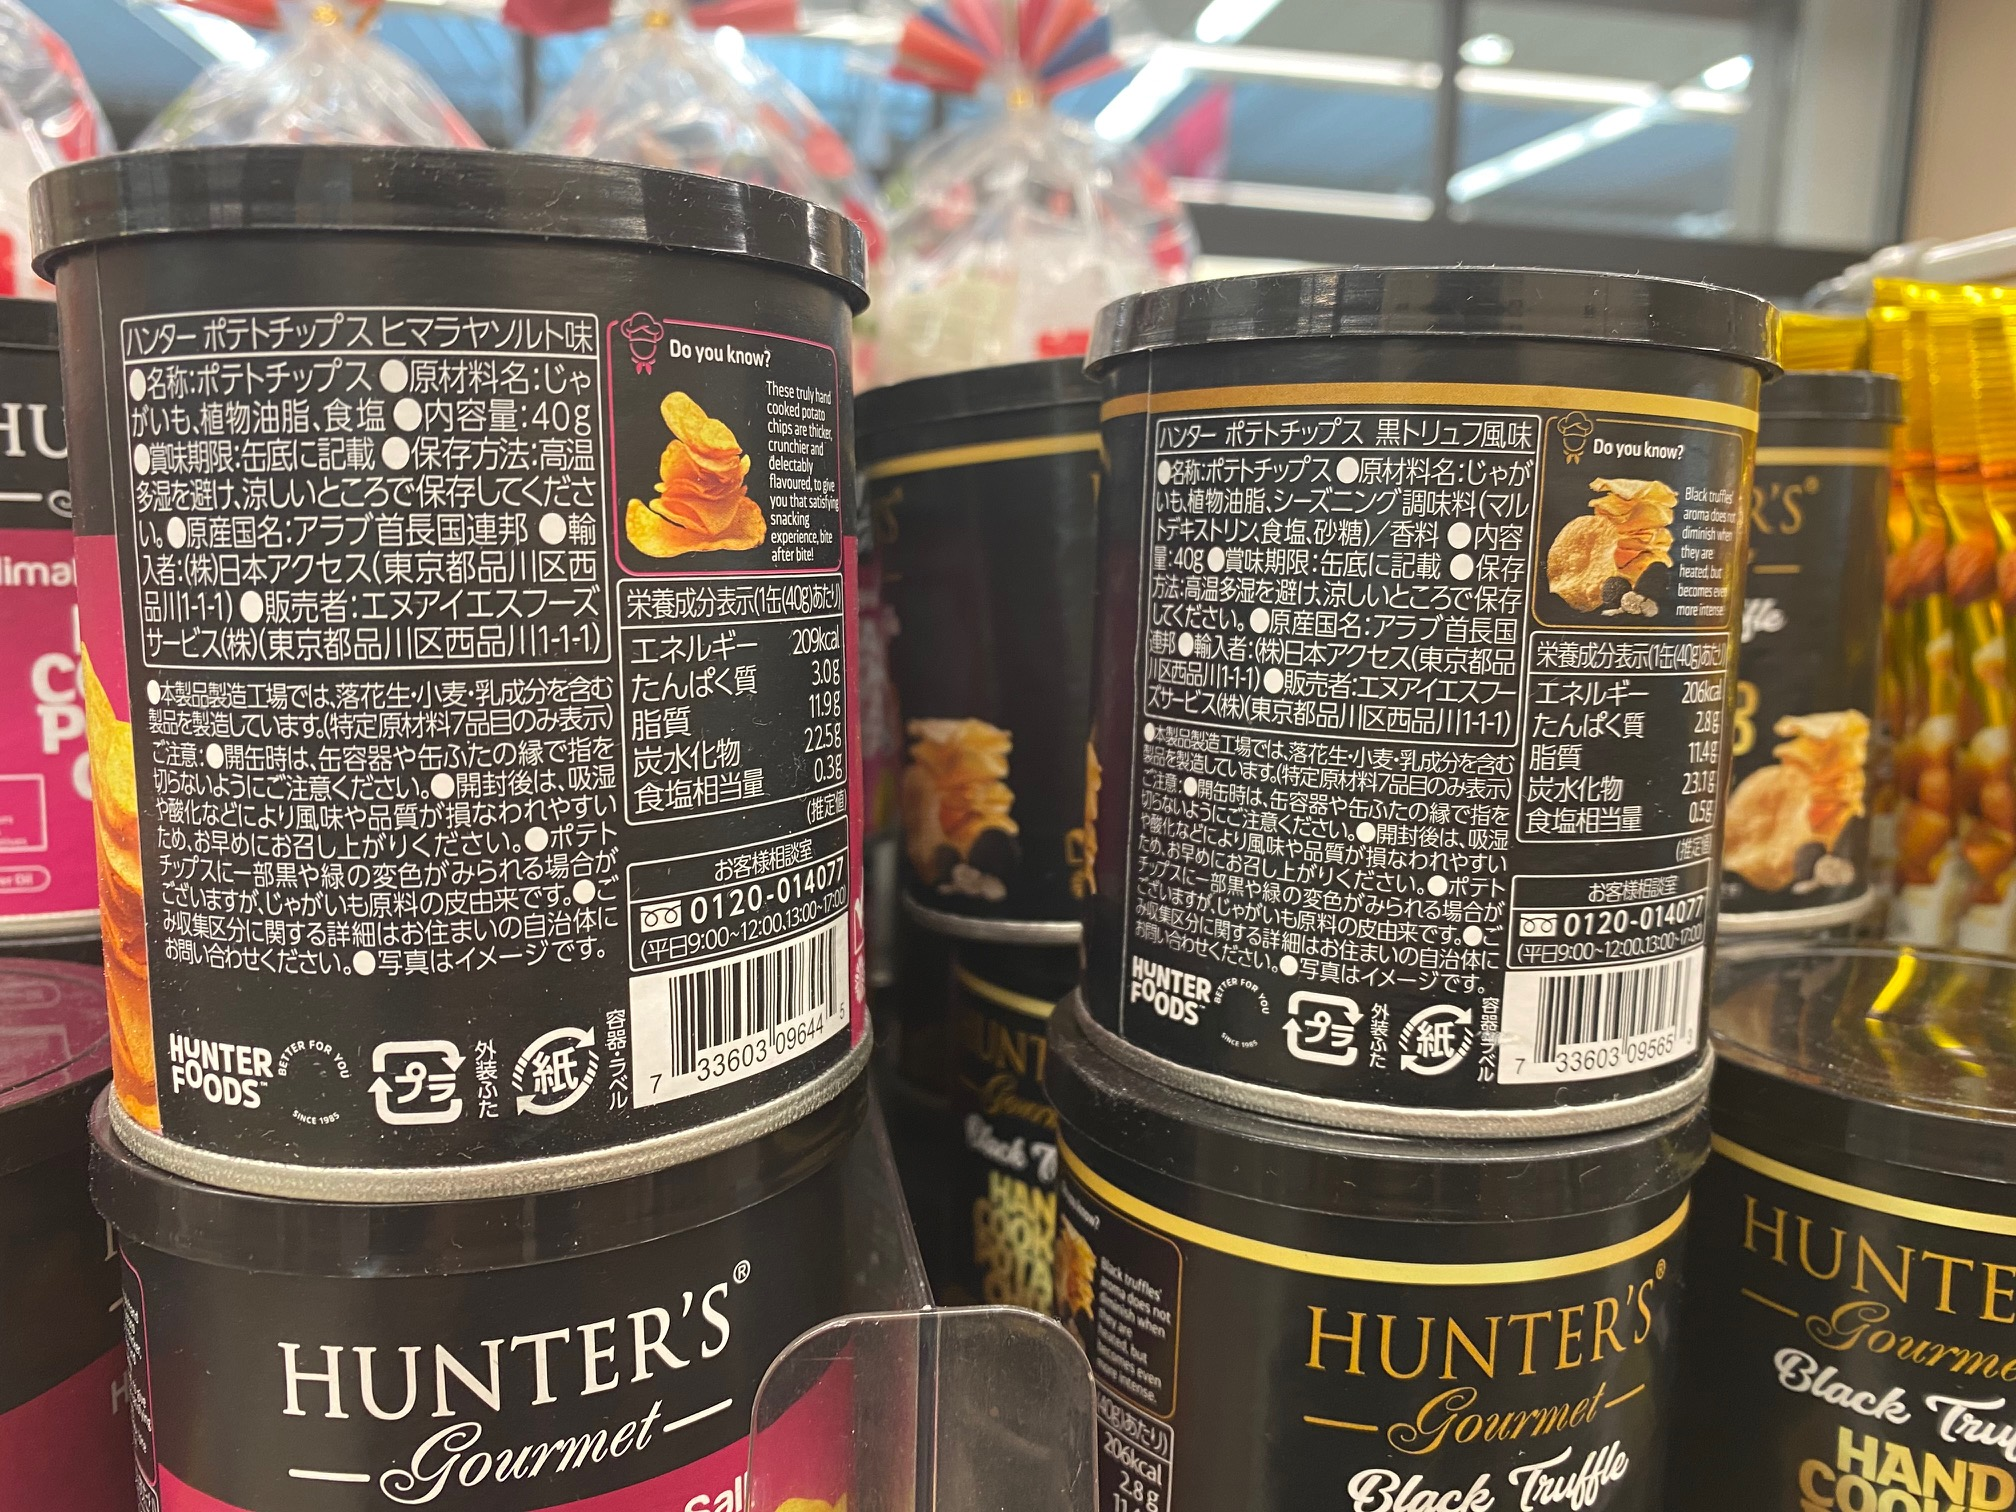 Hunter's Hand Cooked Potato Chips Himalayan Pink Salt and Black Truffle ingredient list